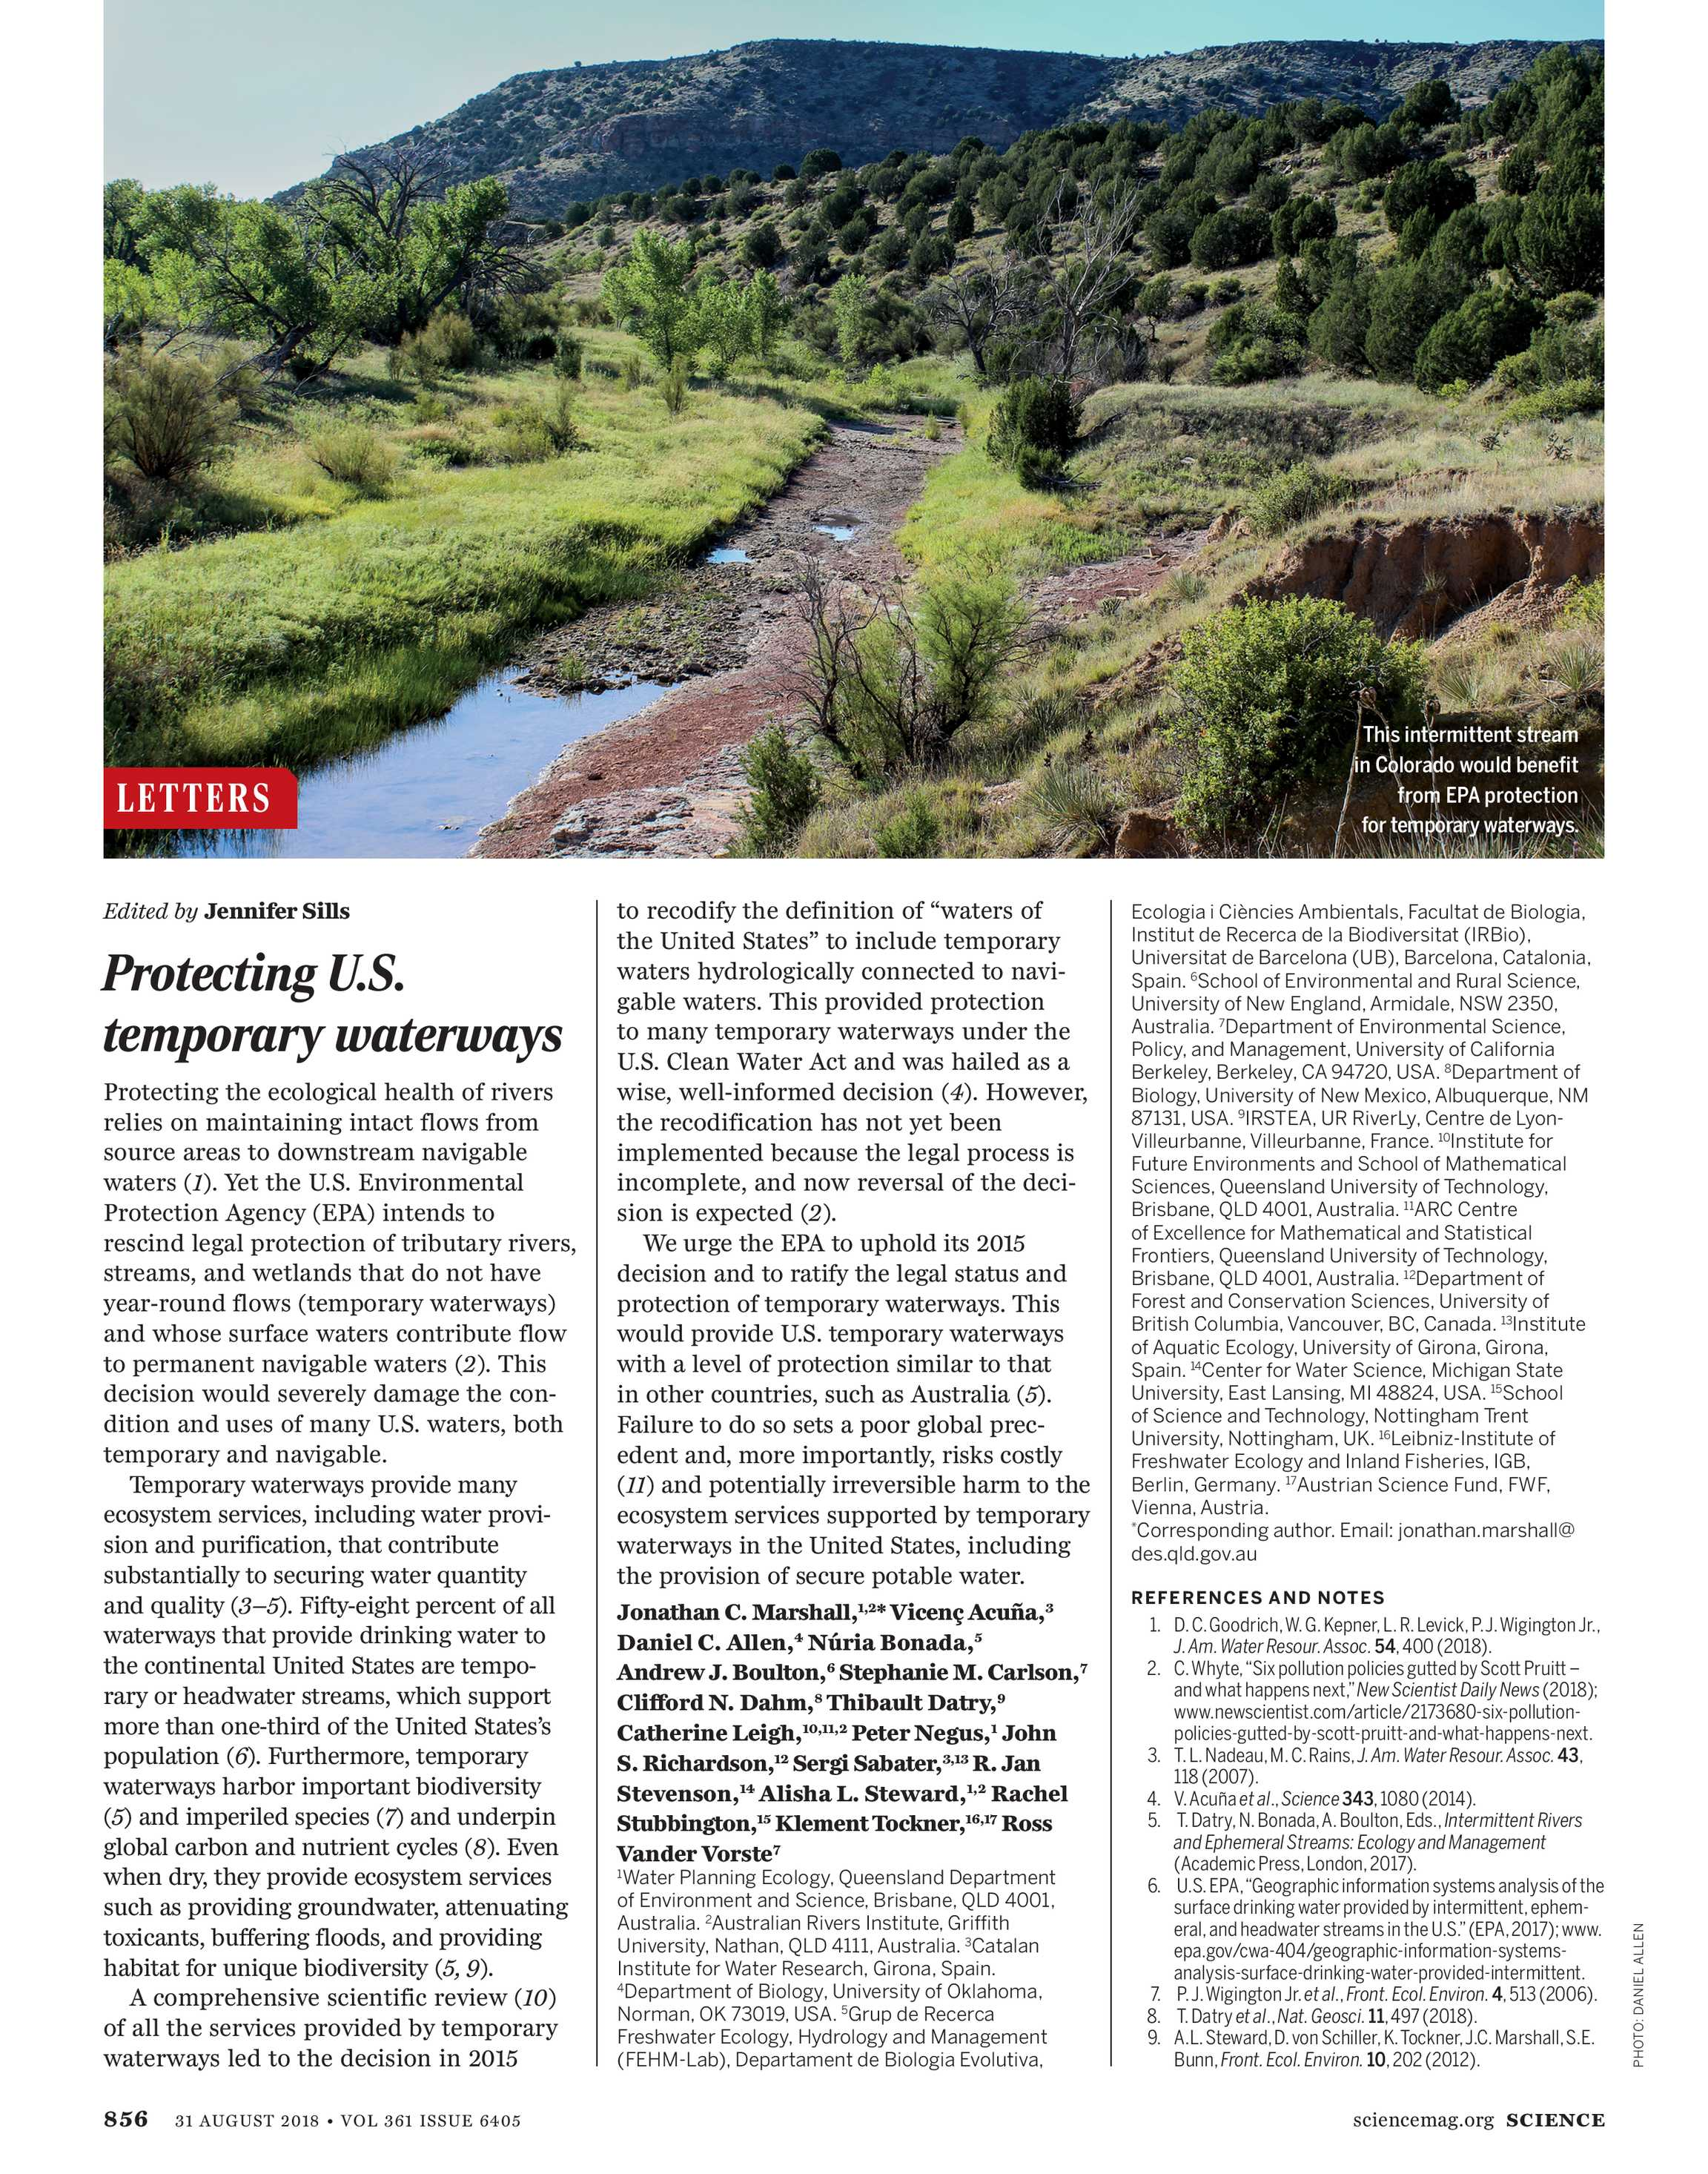 Science Magazine - August 31, 2018 - page 855